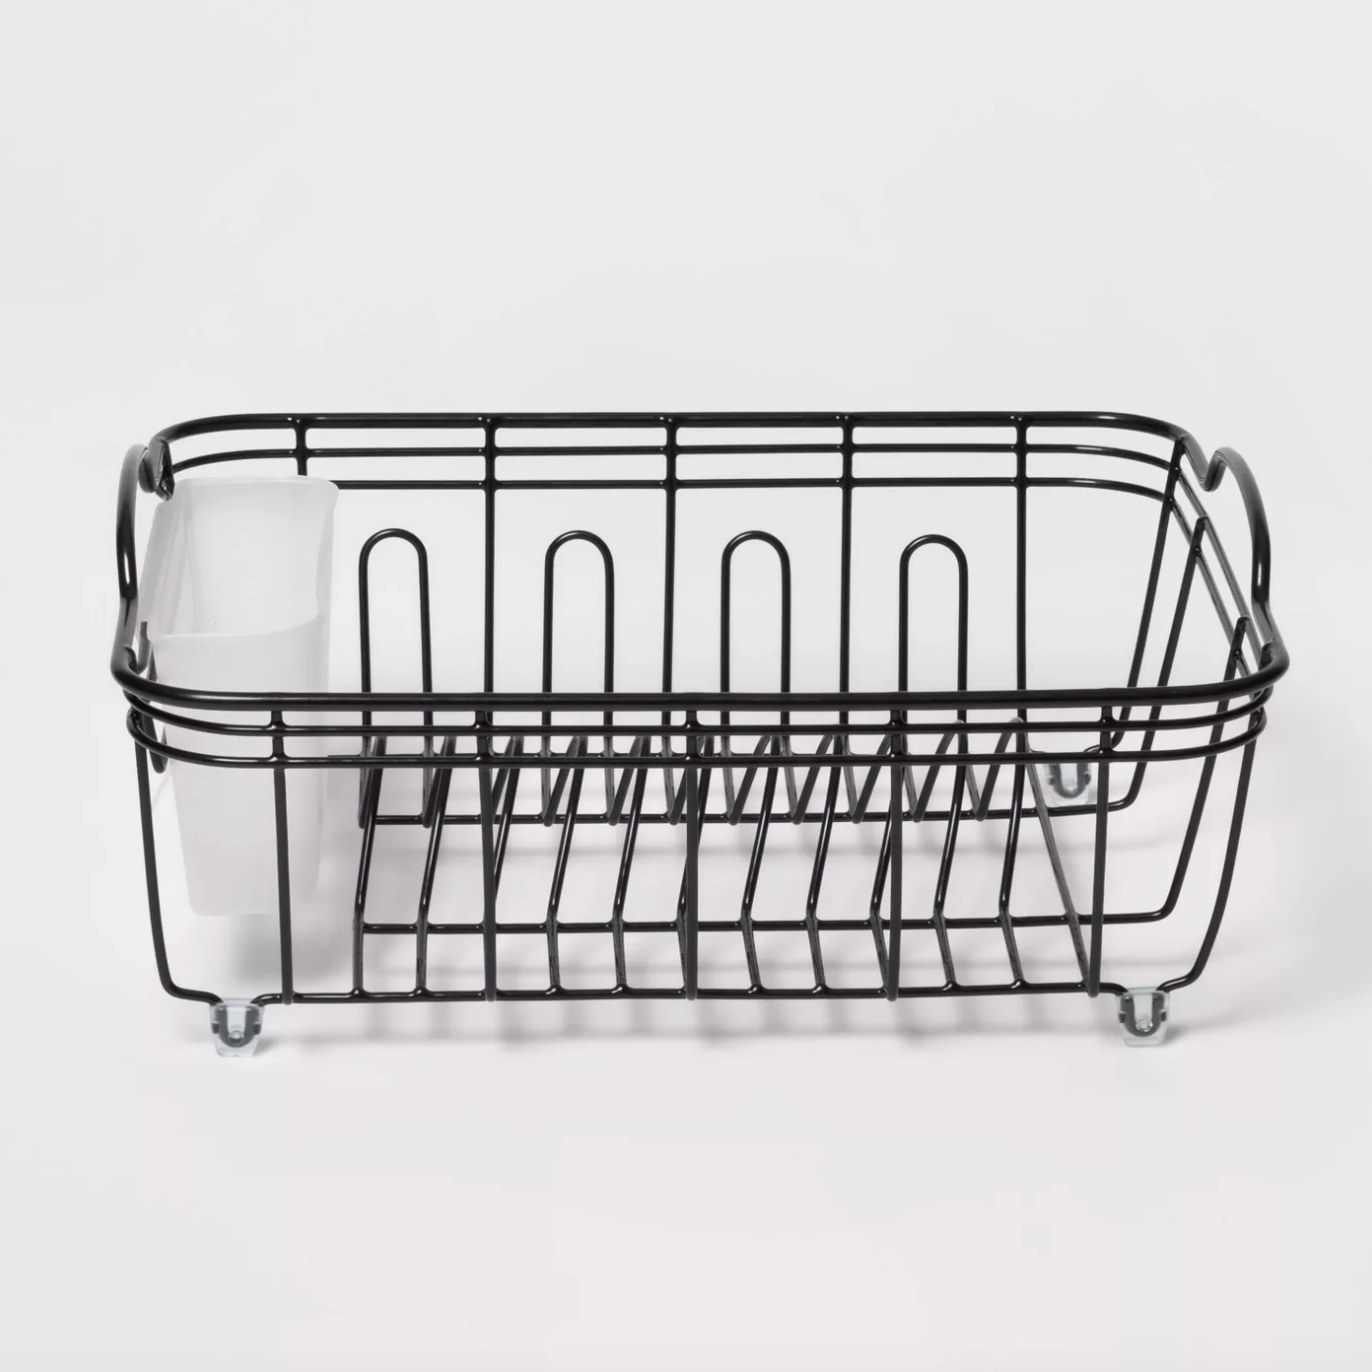 The steel dish drainer in black